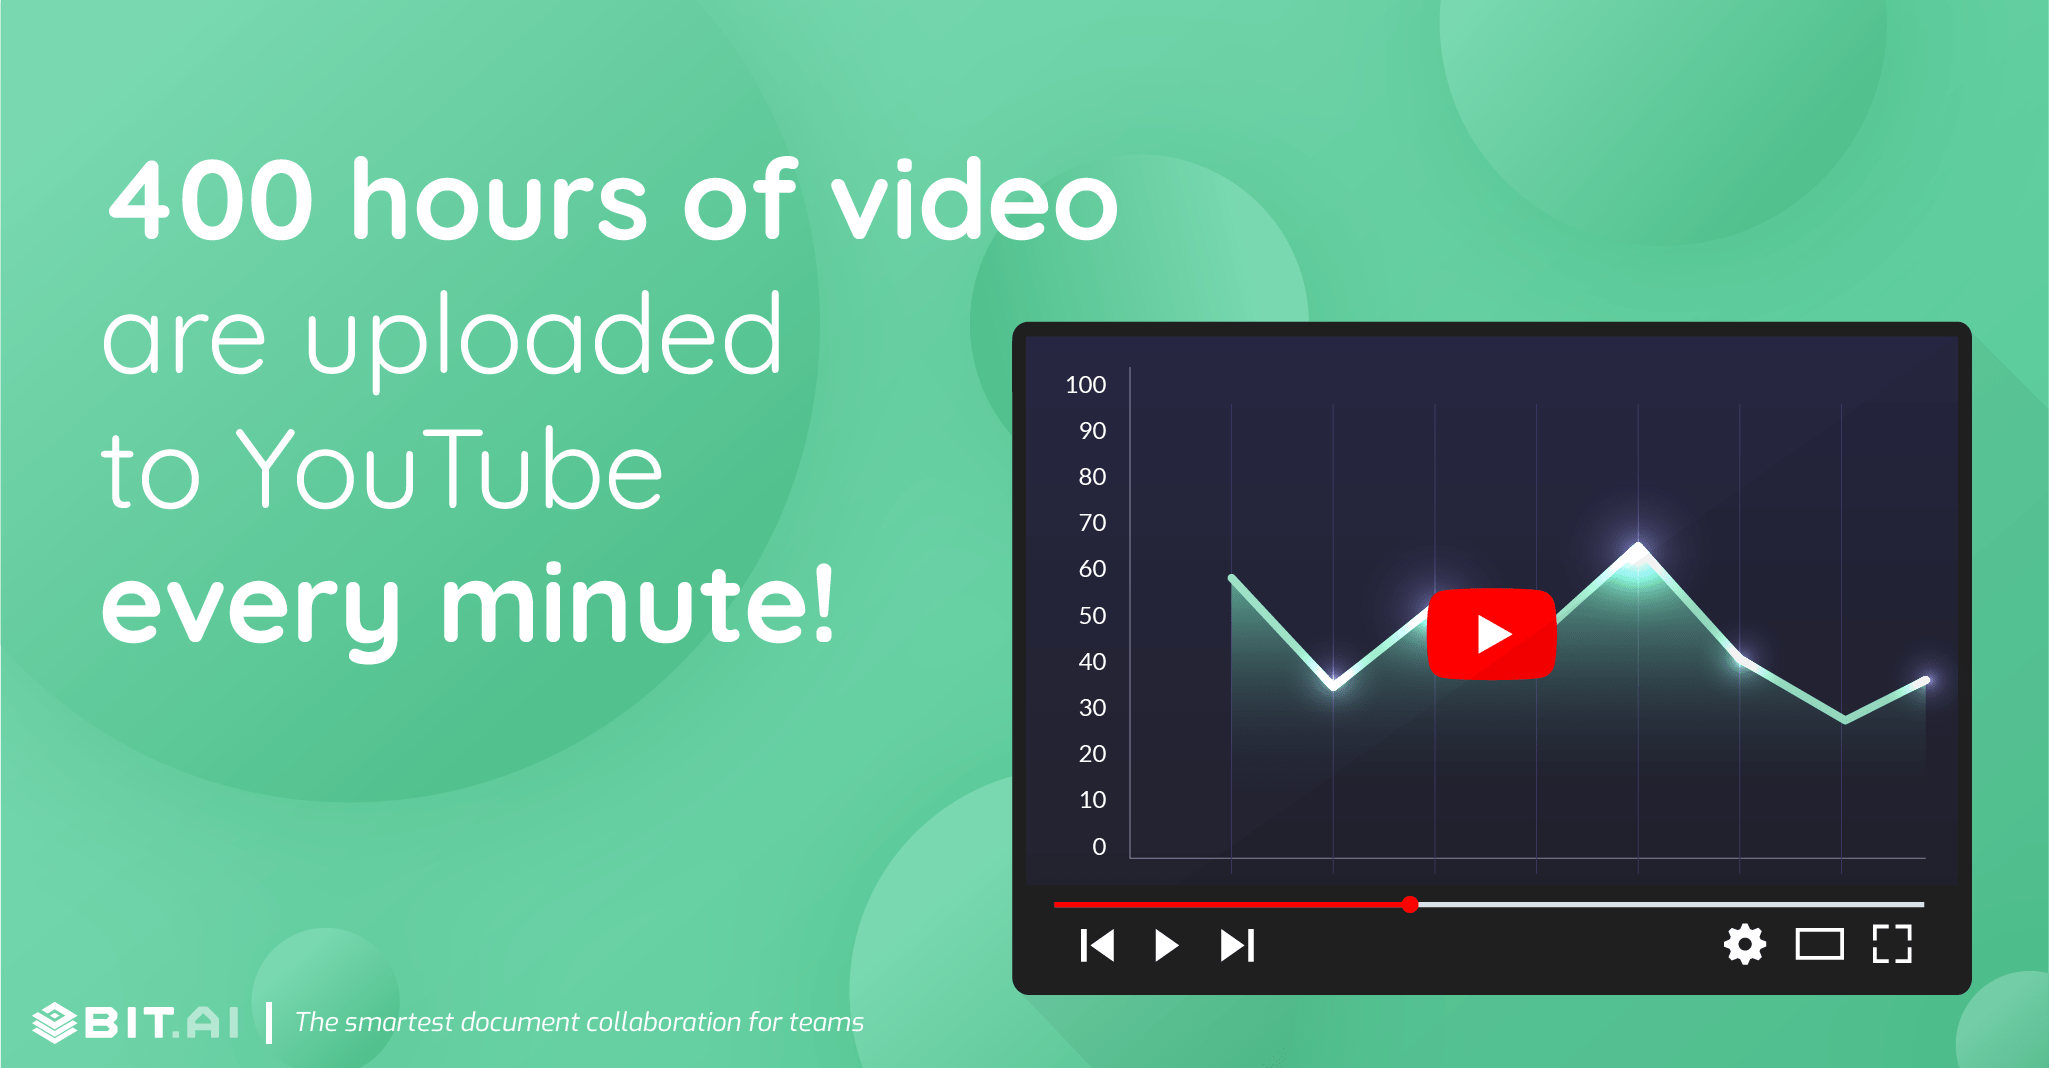 400 hours of video are uploaded to YouTube every minute!